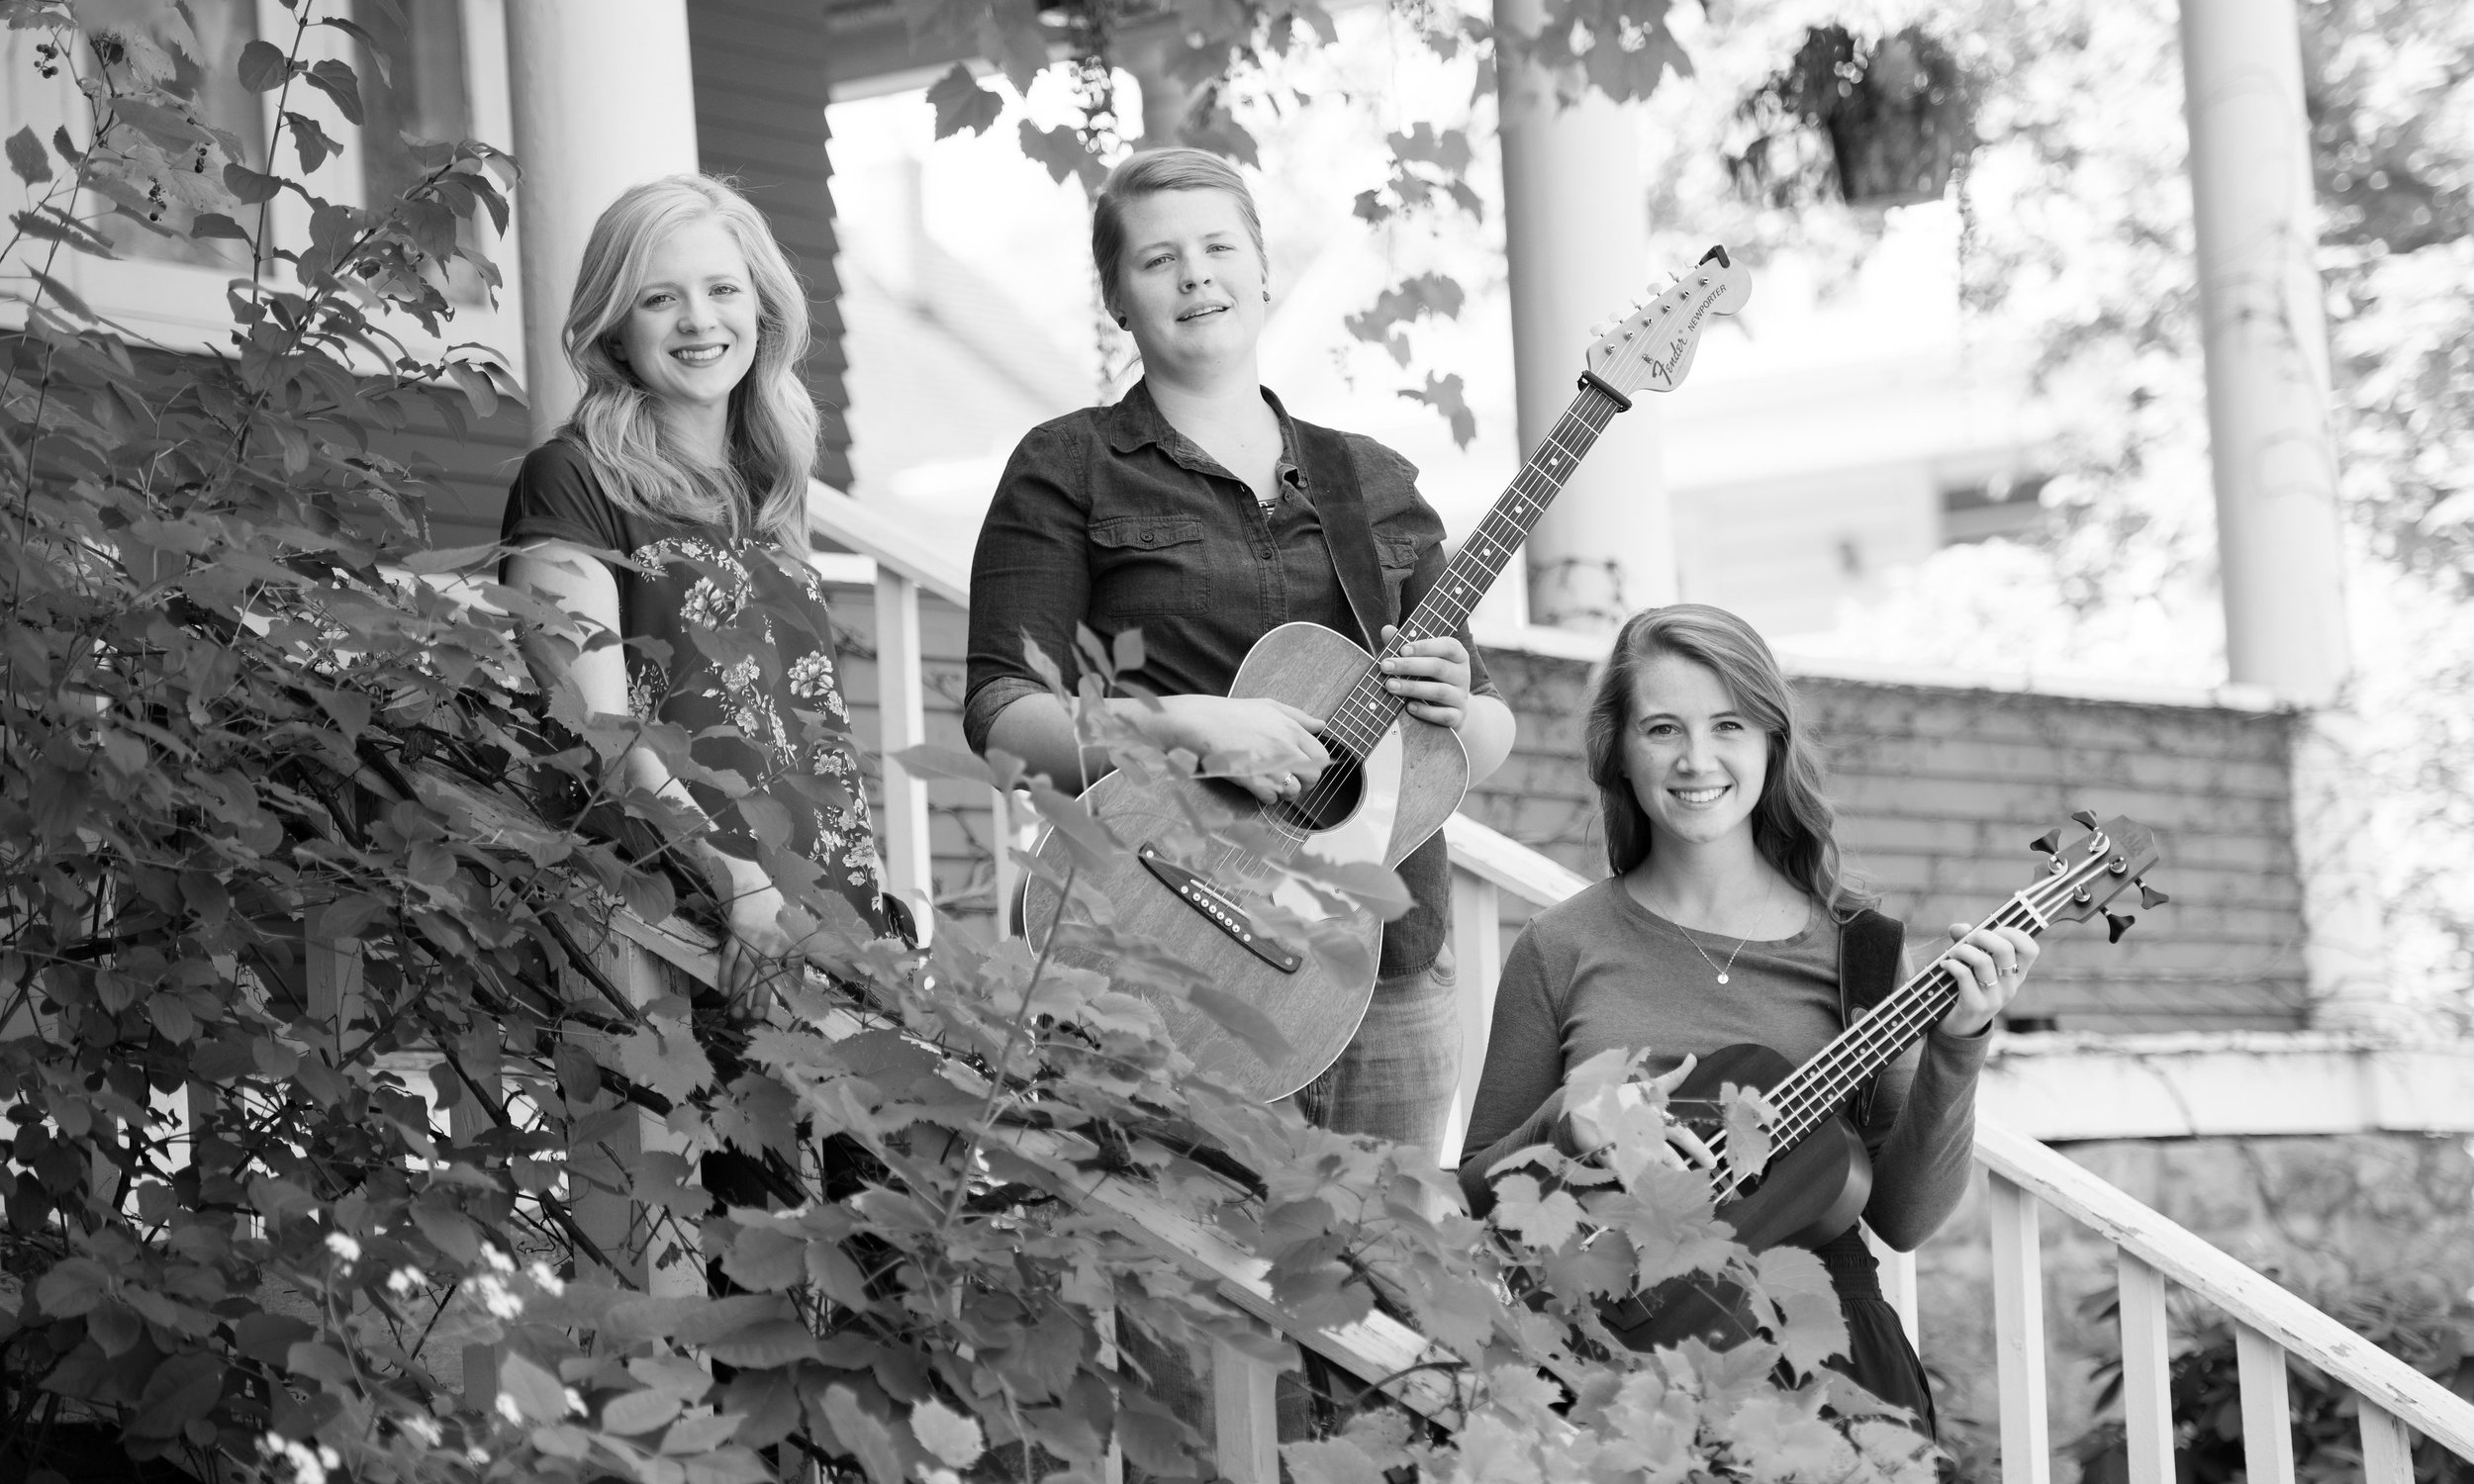 Cedarwood Revival - Trio harmonies with shades of bluegrass, folk and country, Cedarwood Revival